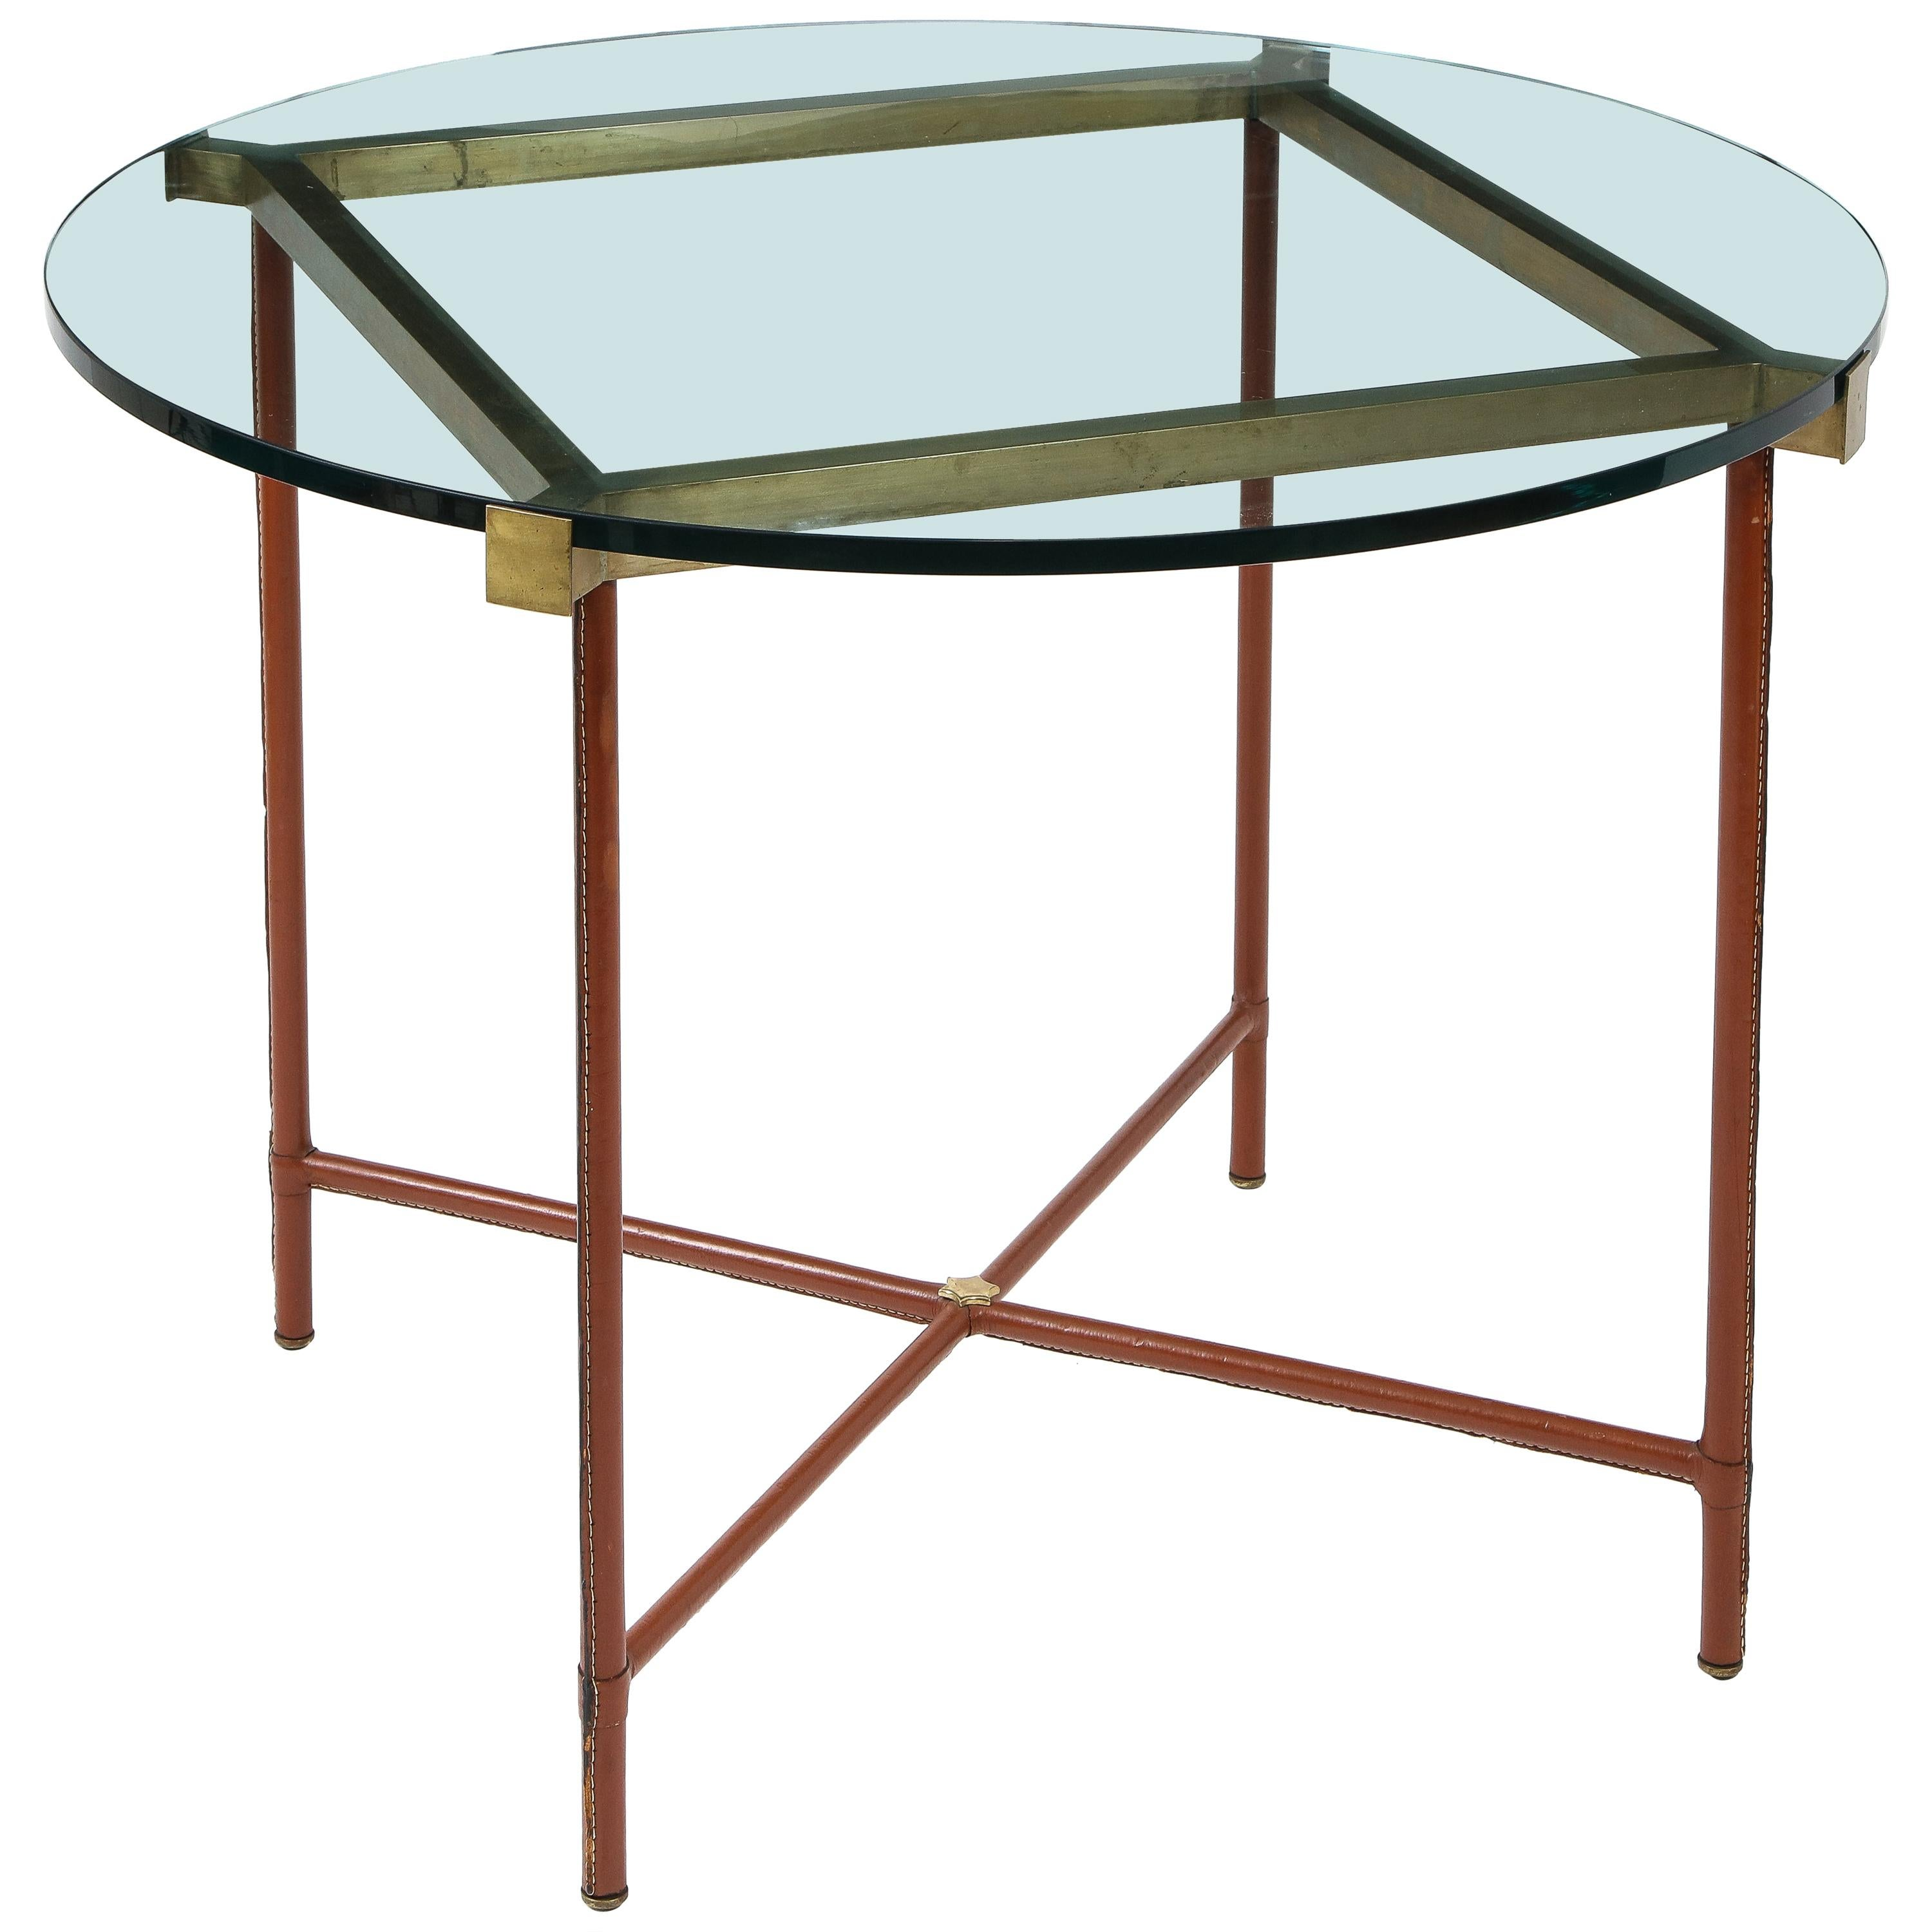 Jacques Adnet Center Table in Stitched Leather, Bronze and Gllass, France, 1950s